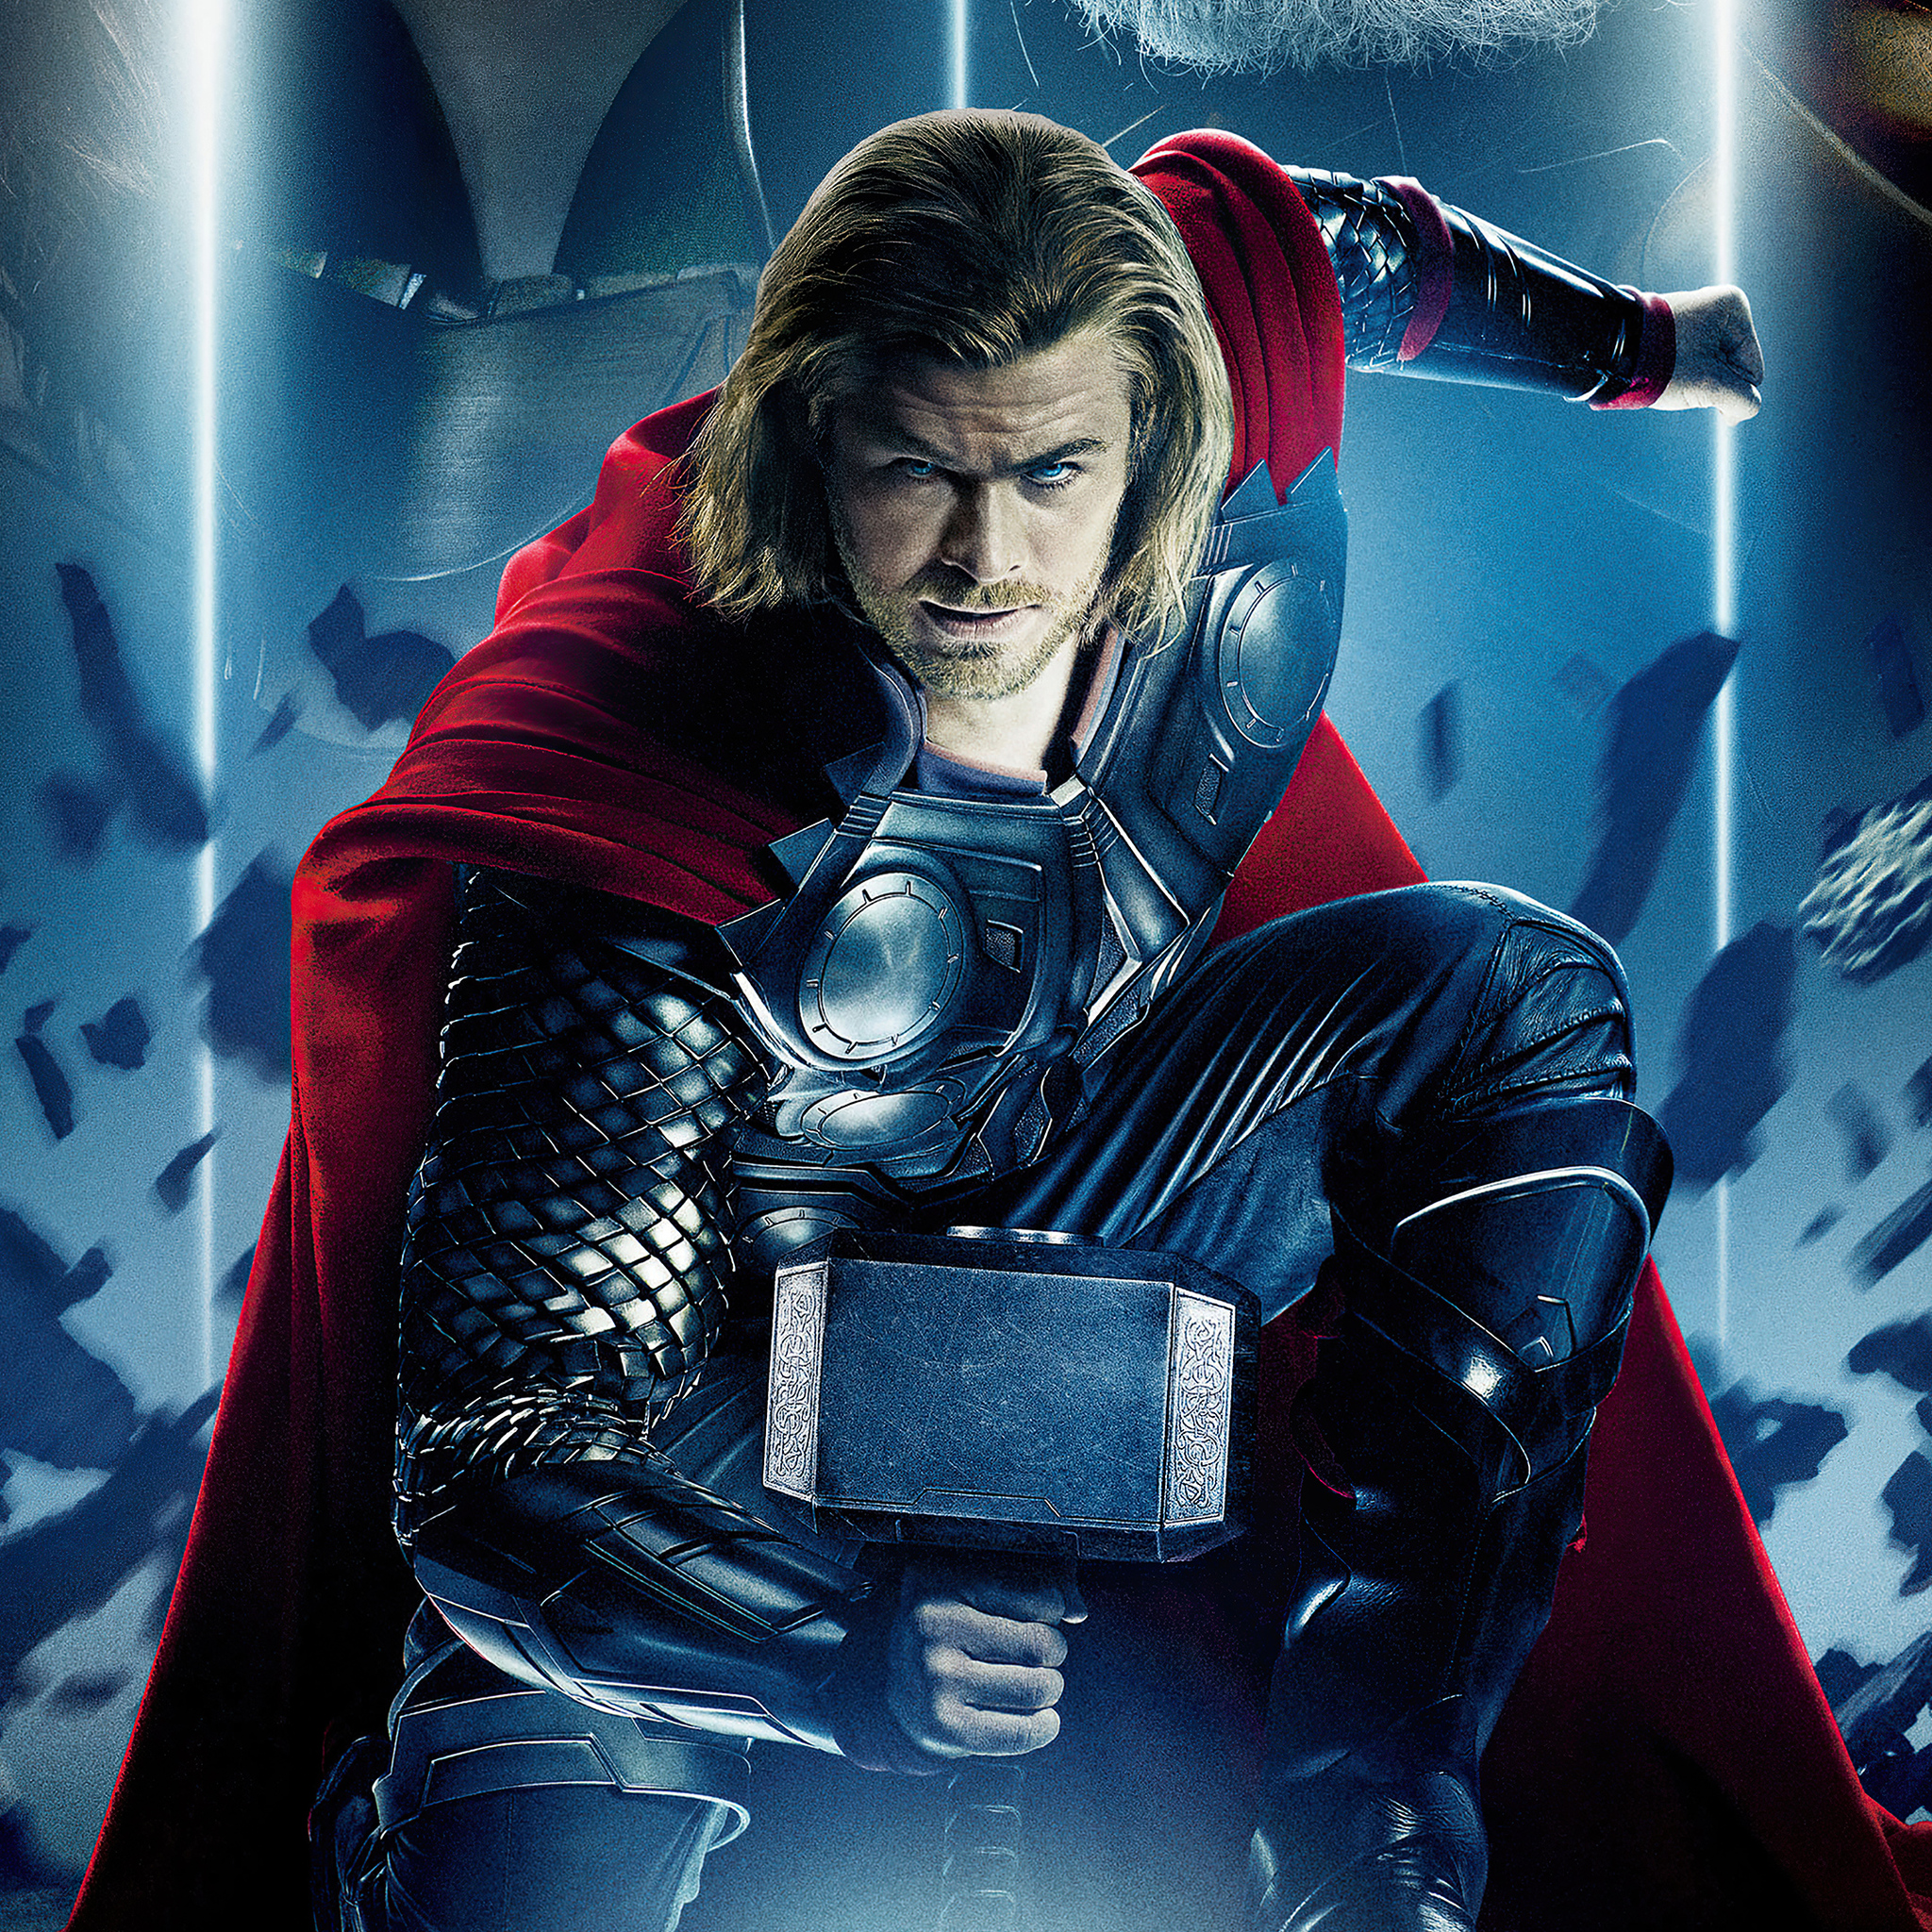 thor-in-avengers-age-of-ultron-4k-7g.jpg